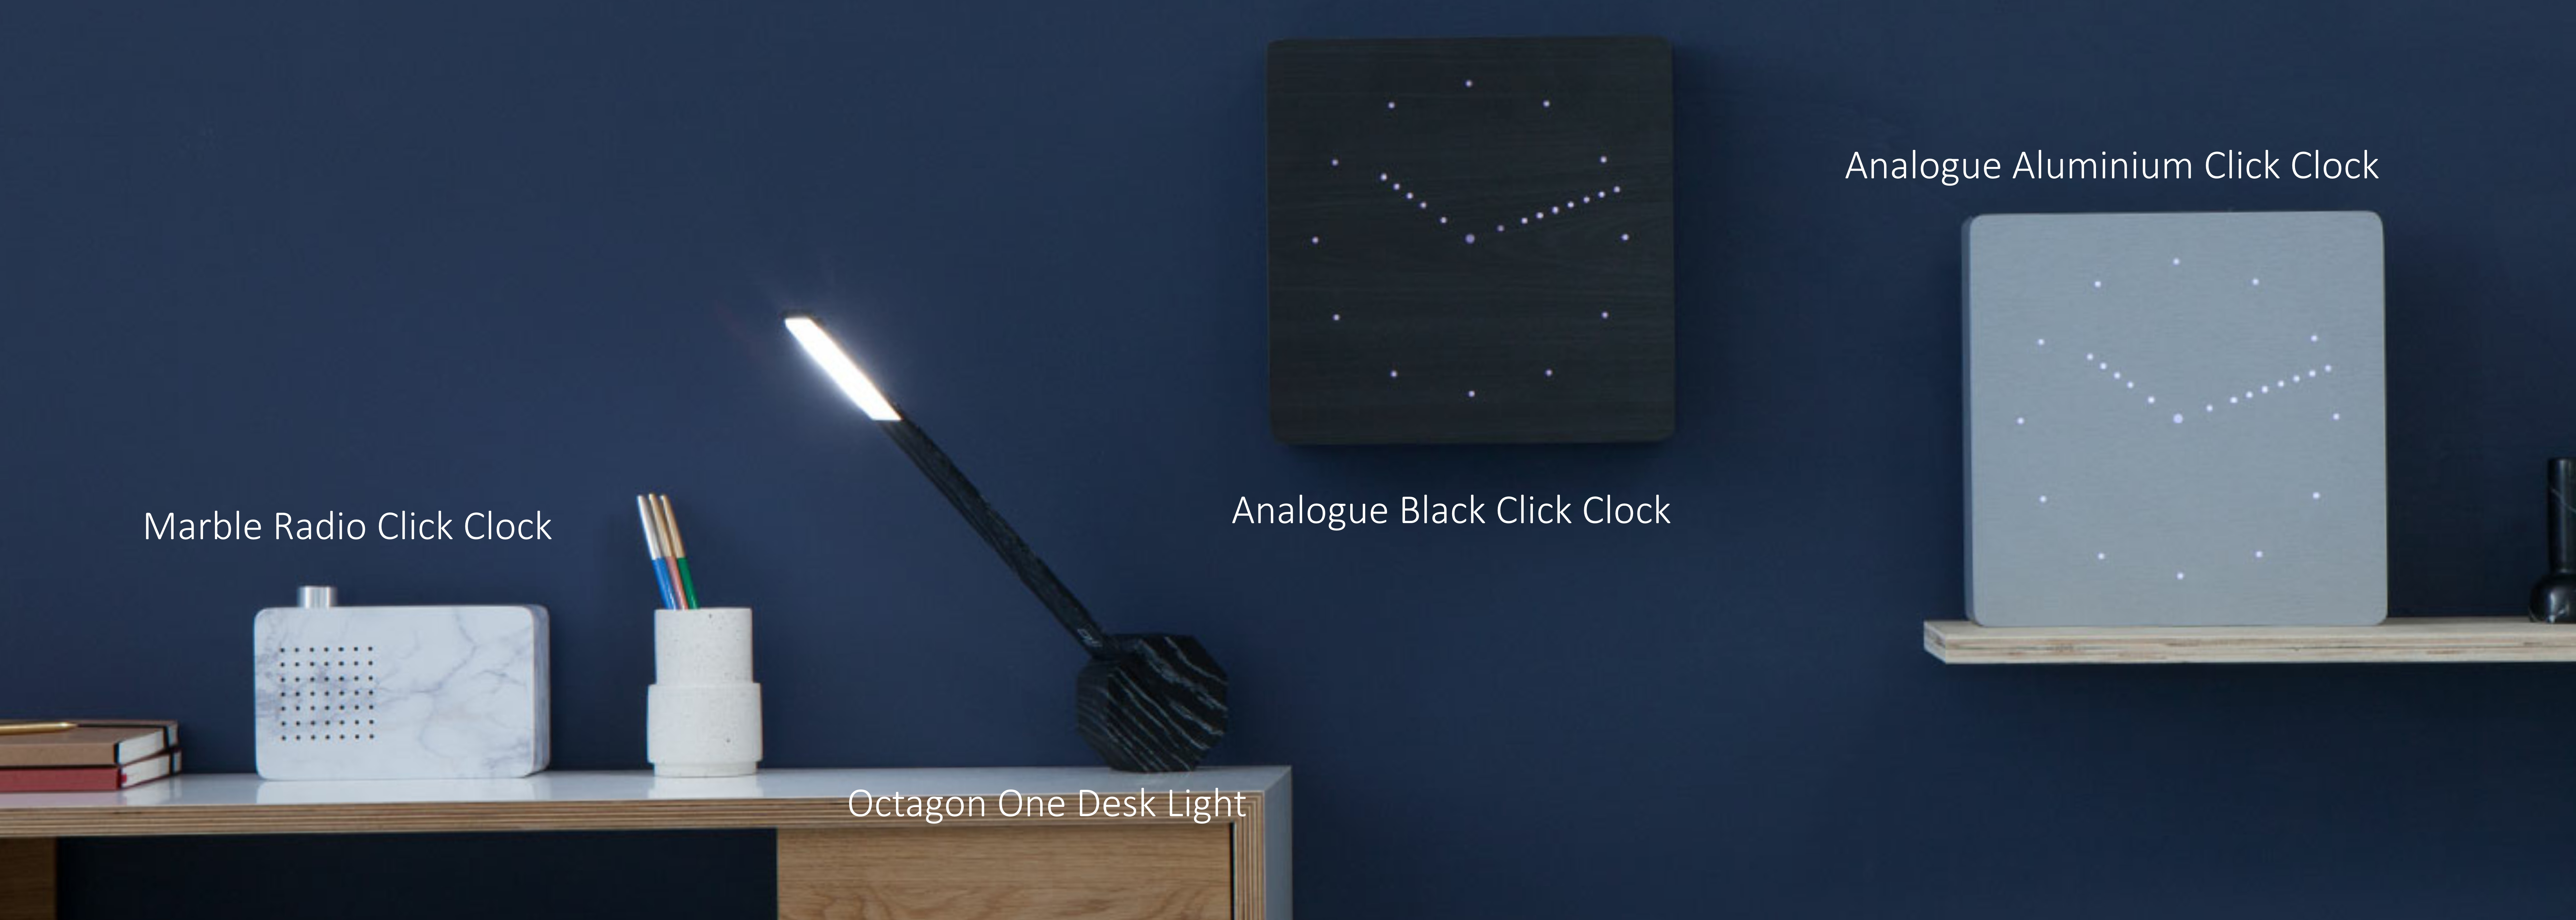 Analogue Click Clock